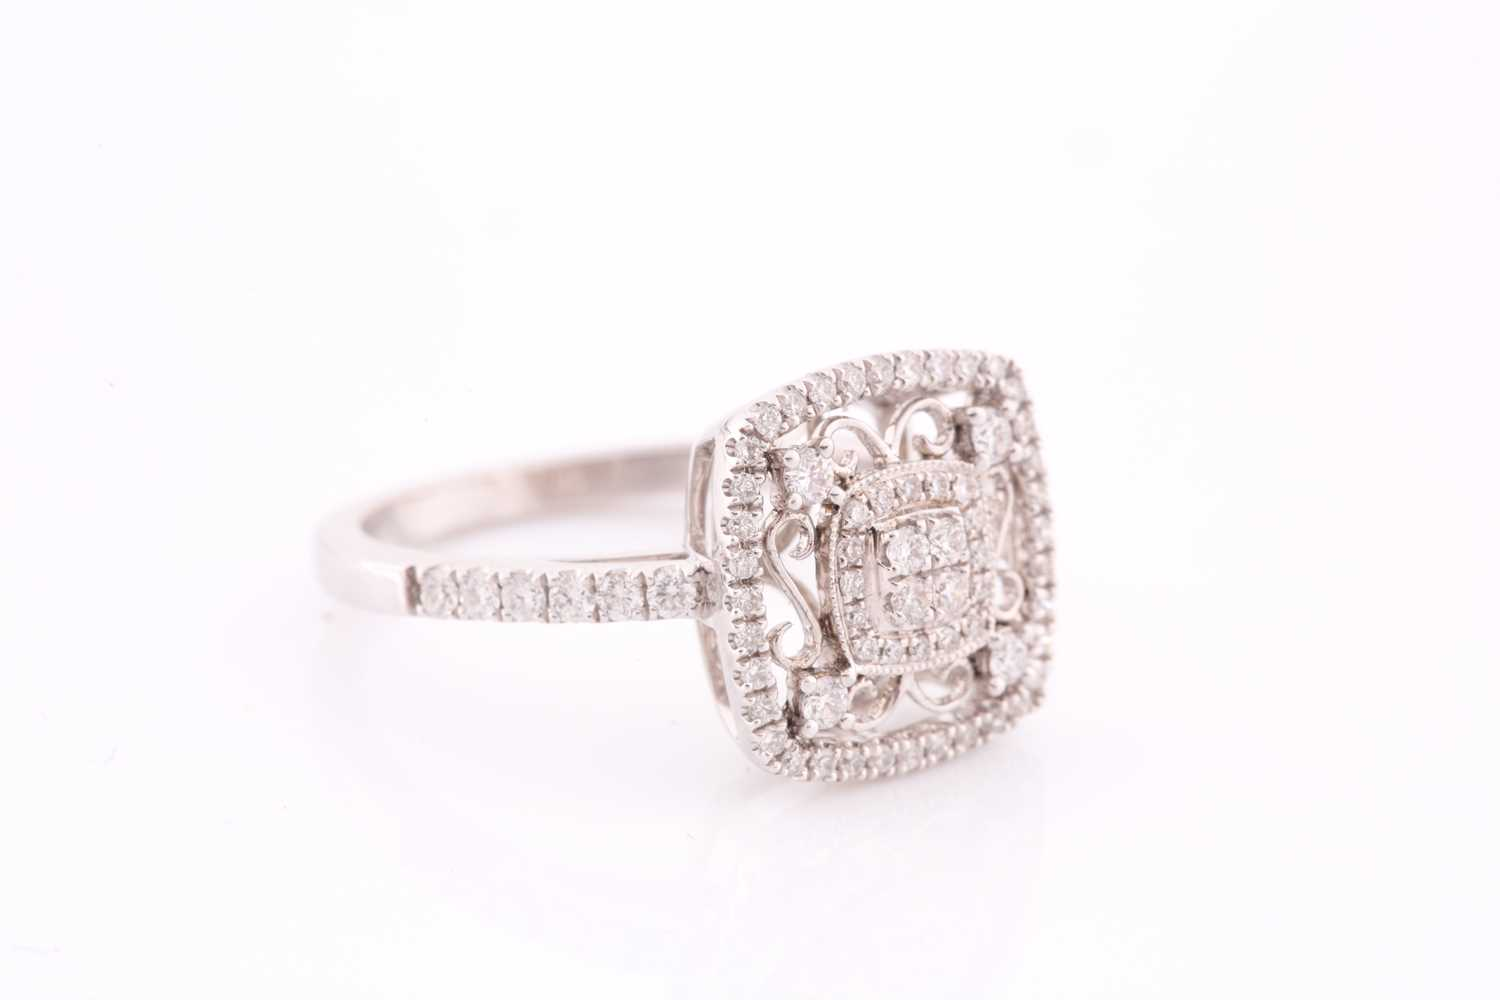 An 18ct white gold and diamond ring, the openwork mount with filigree style decoration, inset with - Image 3 of 4